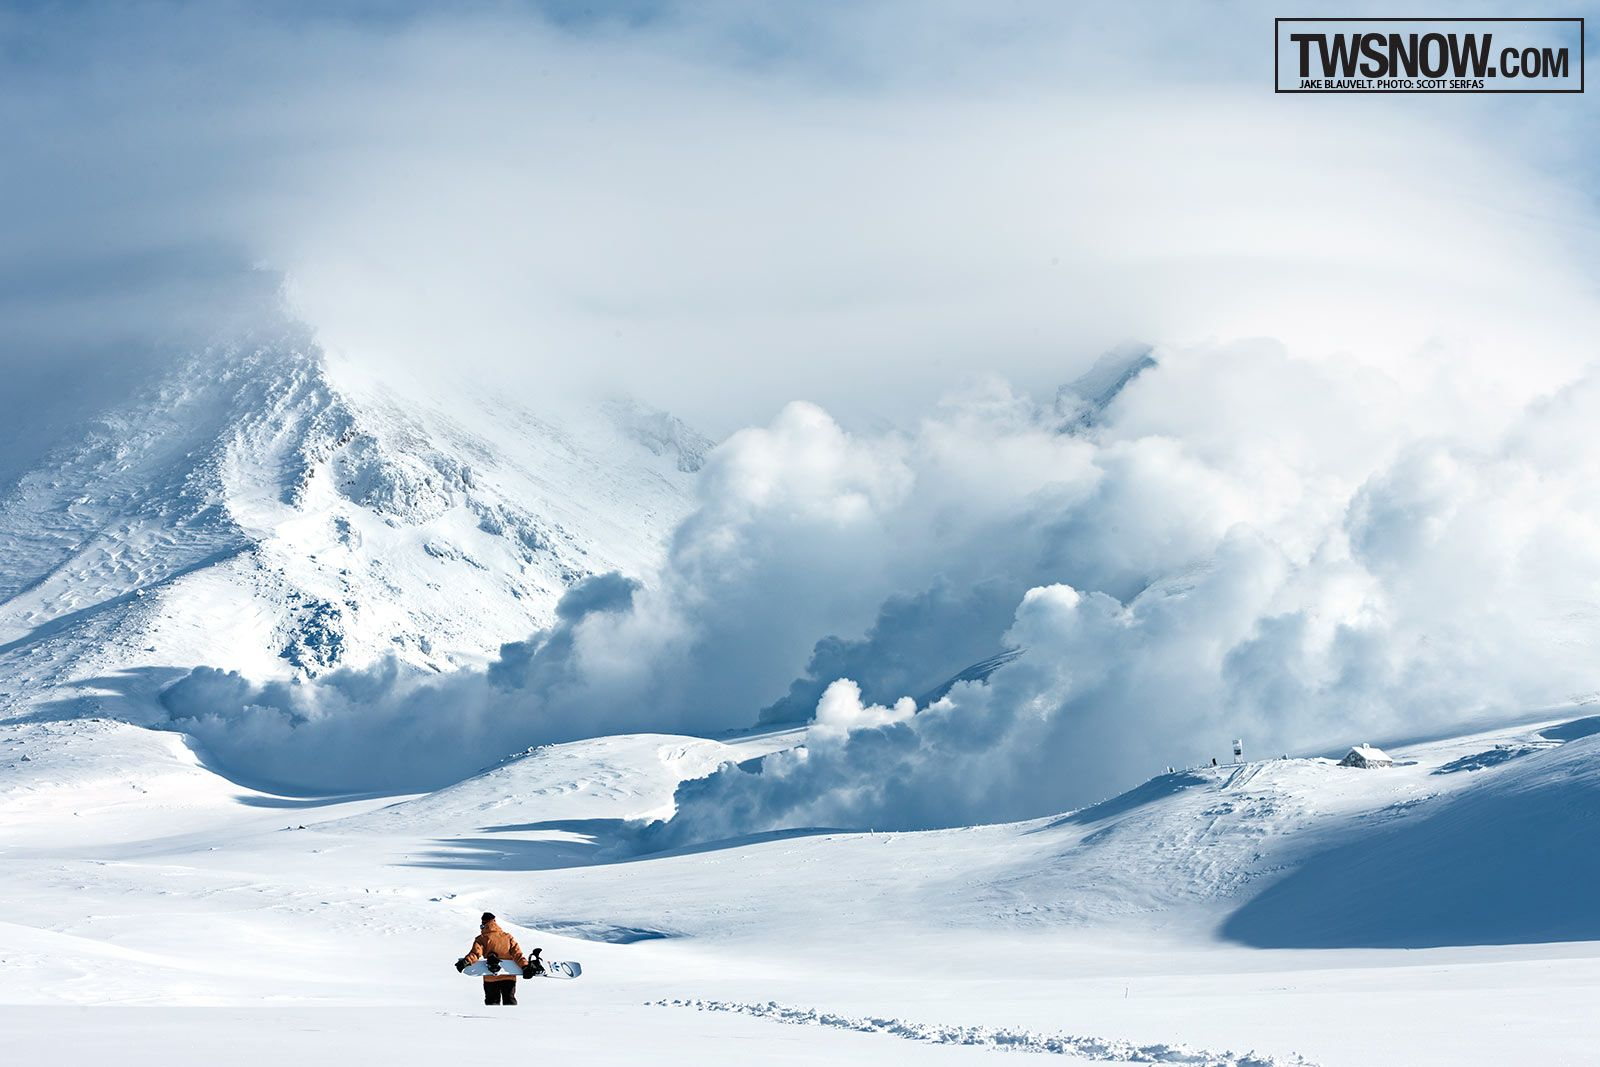 snowboarding wallpapers top free snowboarding